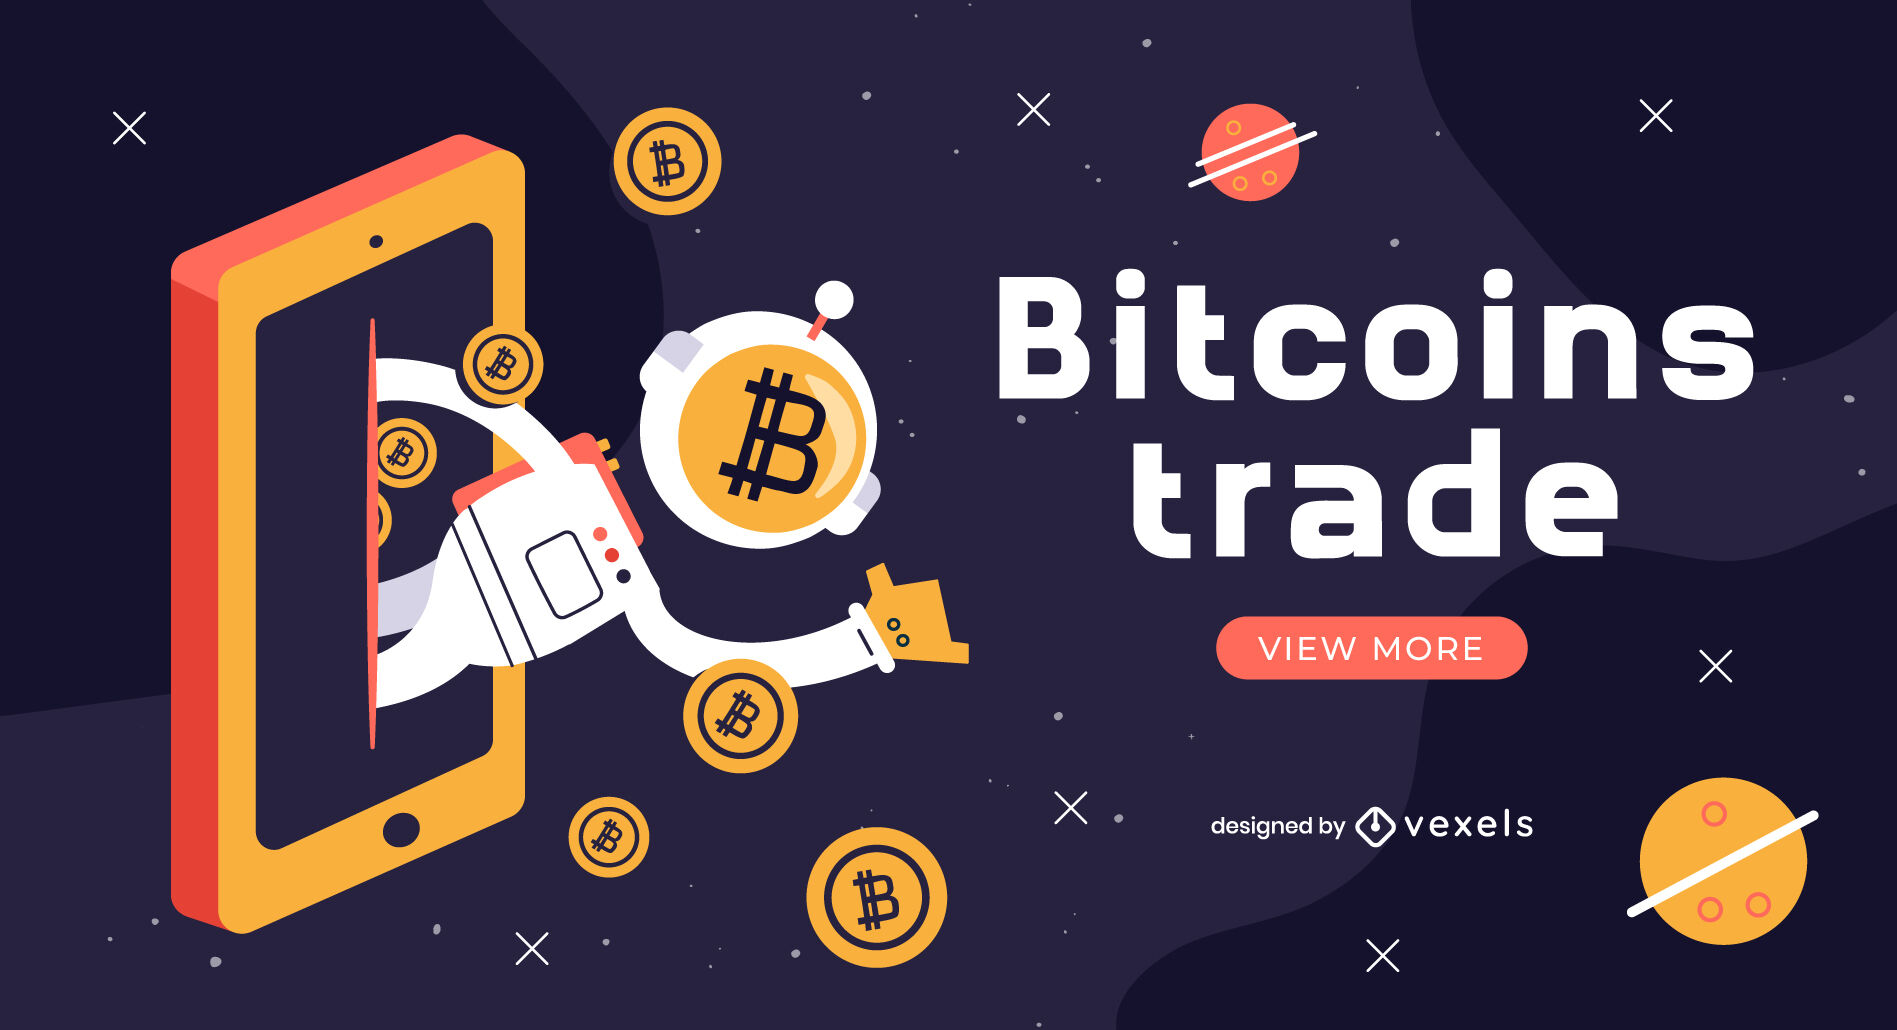 Bitcoin cryptocurrency astronaut space slider